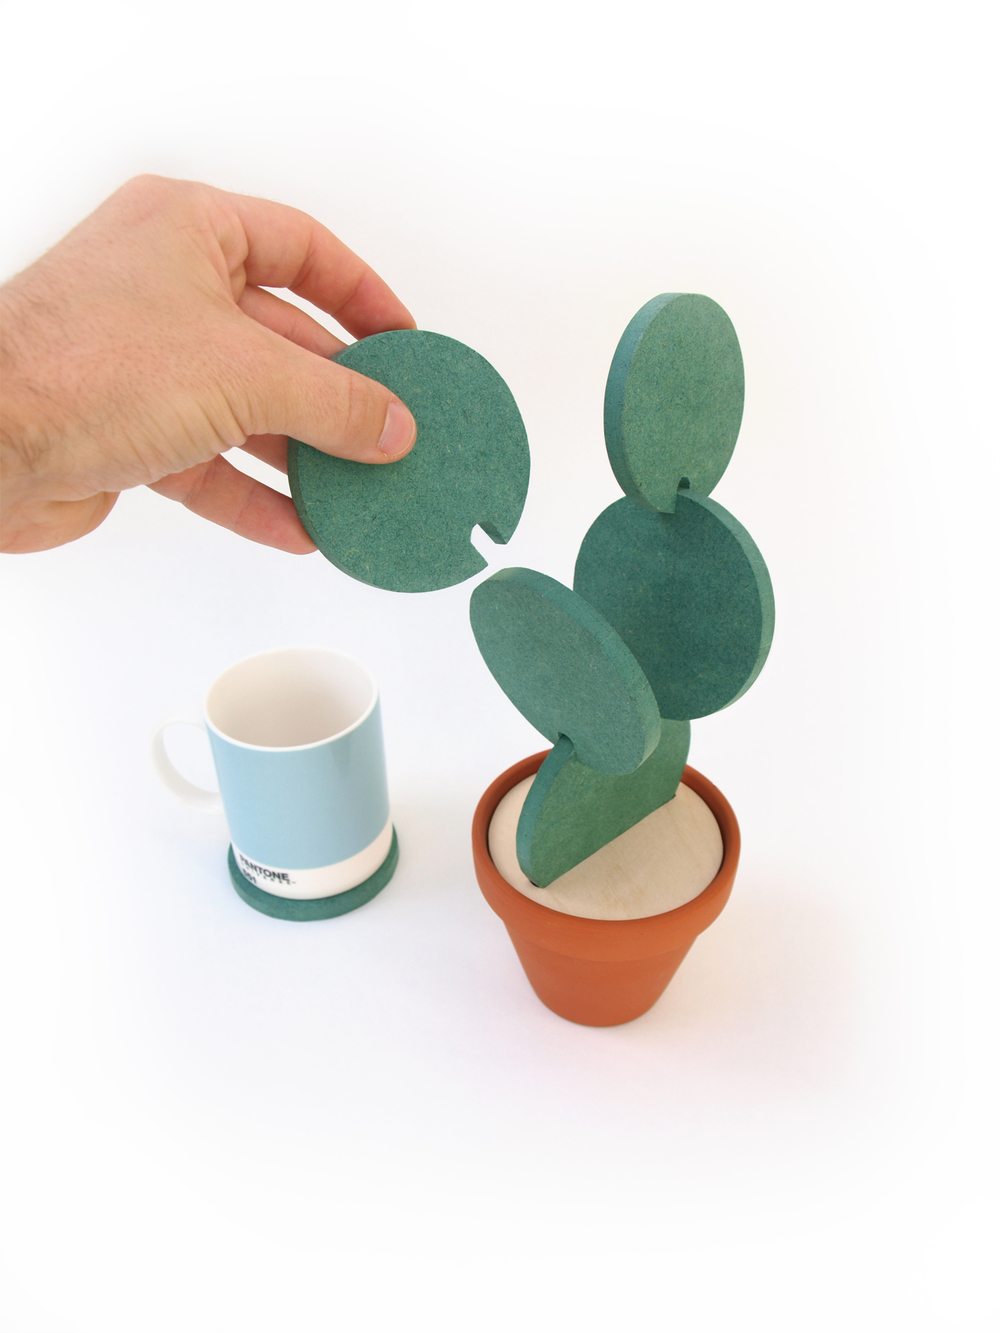 Cacti Coasters Stack To Create Cute Little Succulents